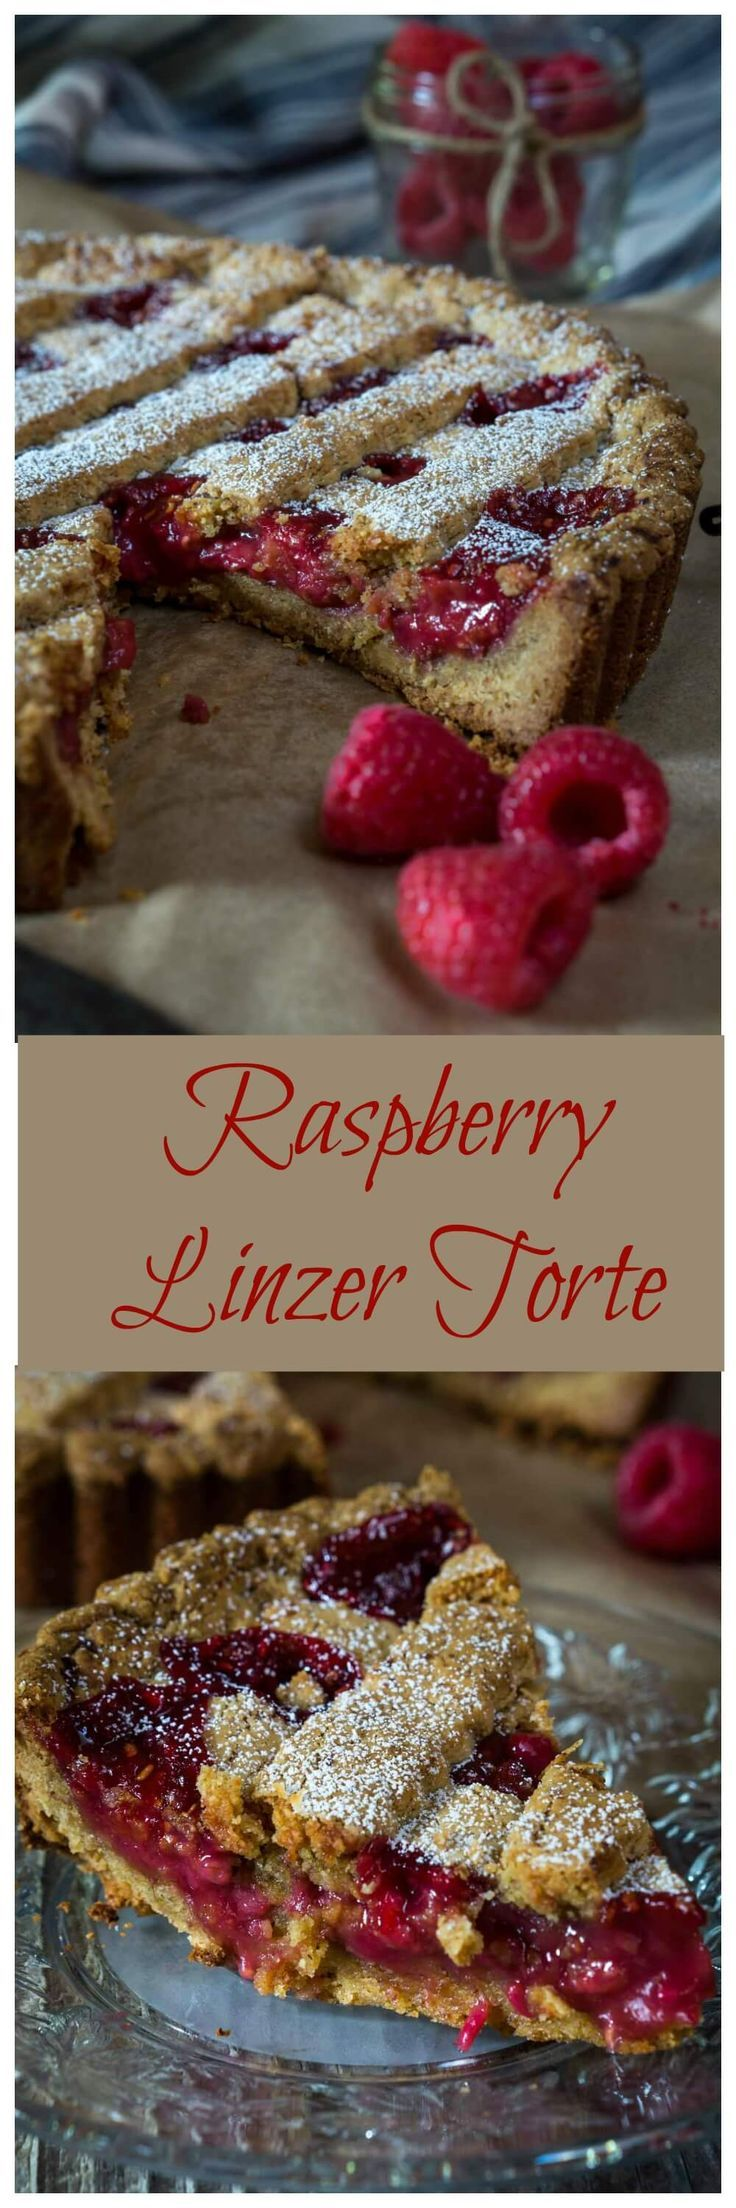 Raspberry Linzer Torte is rustically beautiful. The combination of thewarm nuttiness homemade torte shell with a fresh raspberry filling is luscious. #Linzertorte #raspberry #dessert | Linzer Torte | Raspberry Tart | Linzer Cake | Raspberry Dessert via @HostessAtHeart